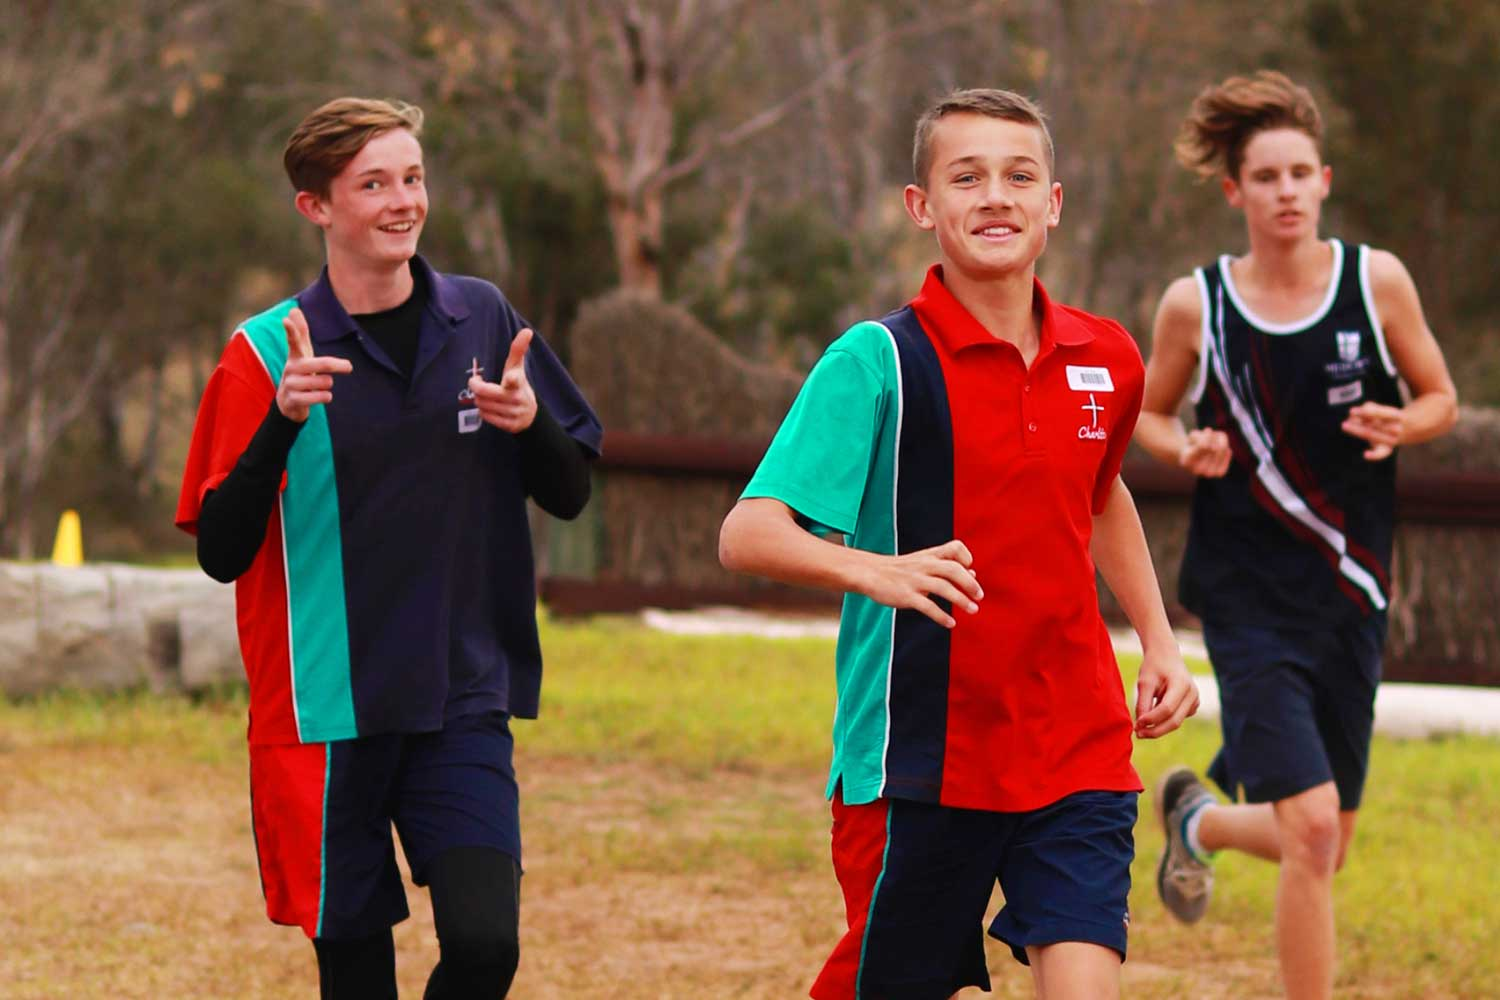 sport competition levels charlton christian college